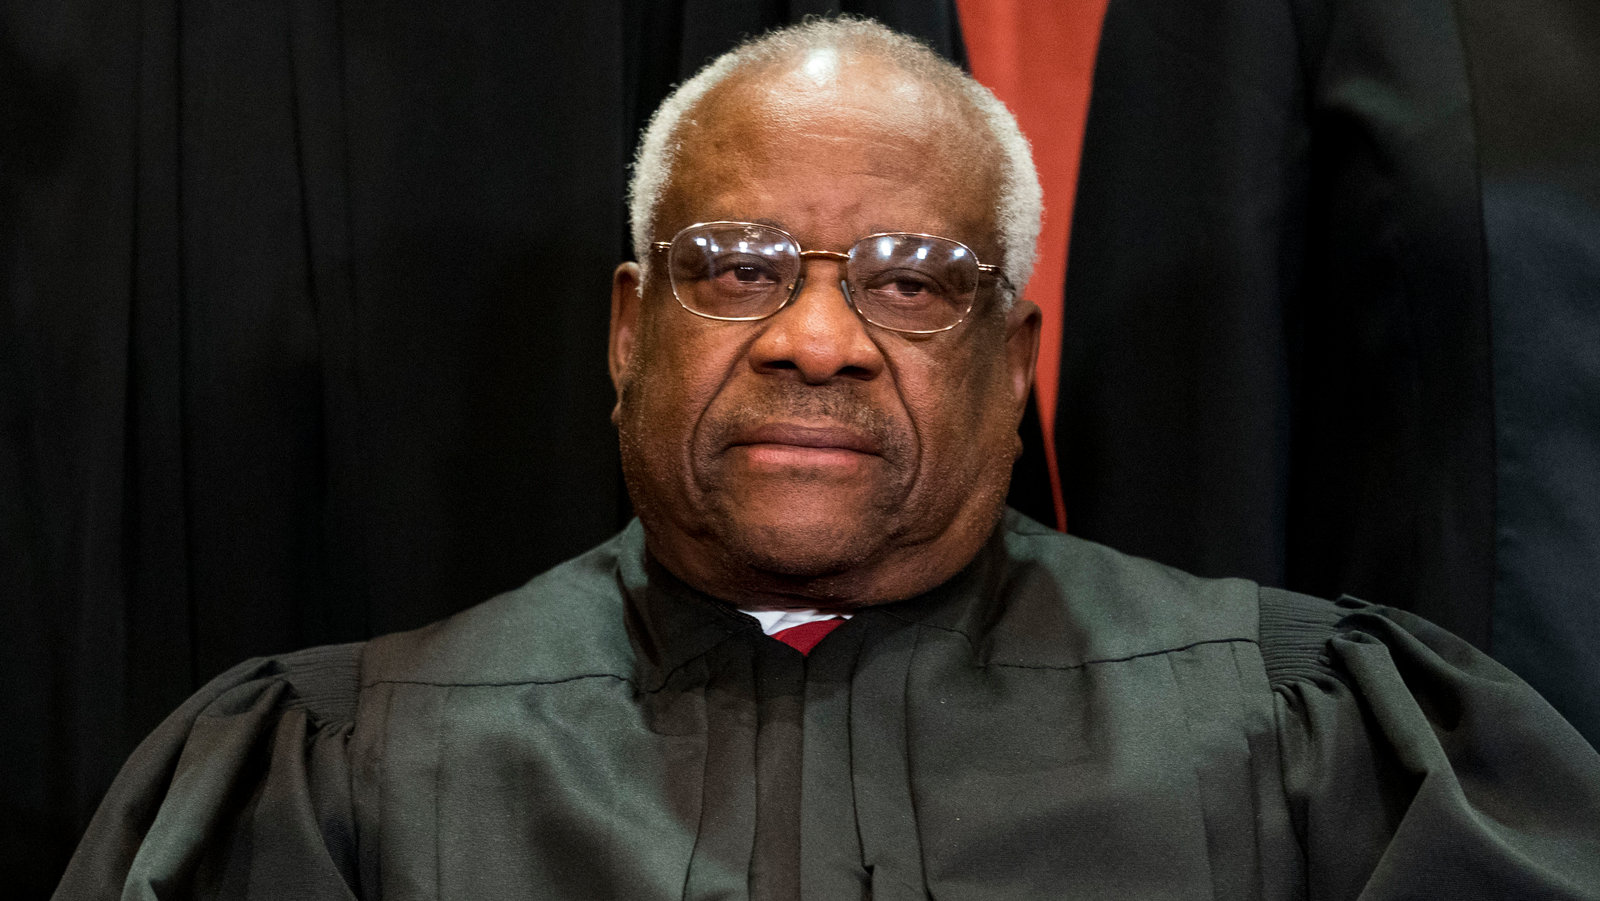 After supreme court ruling in curtis flowers case, prosecutor runs unopposed doug evans, the controversial mississippi prosecutor who tried curtis. Clarence Thomas Breaks a Three-Year Silence at Supreme